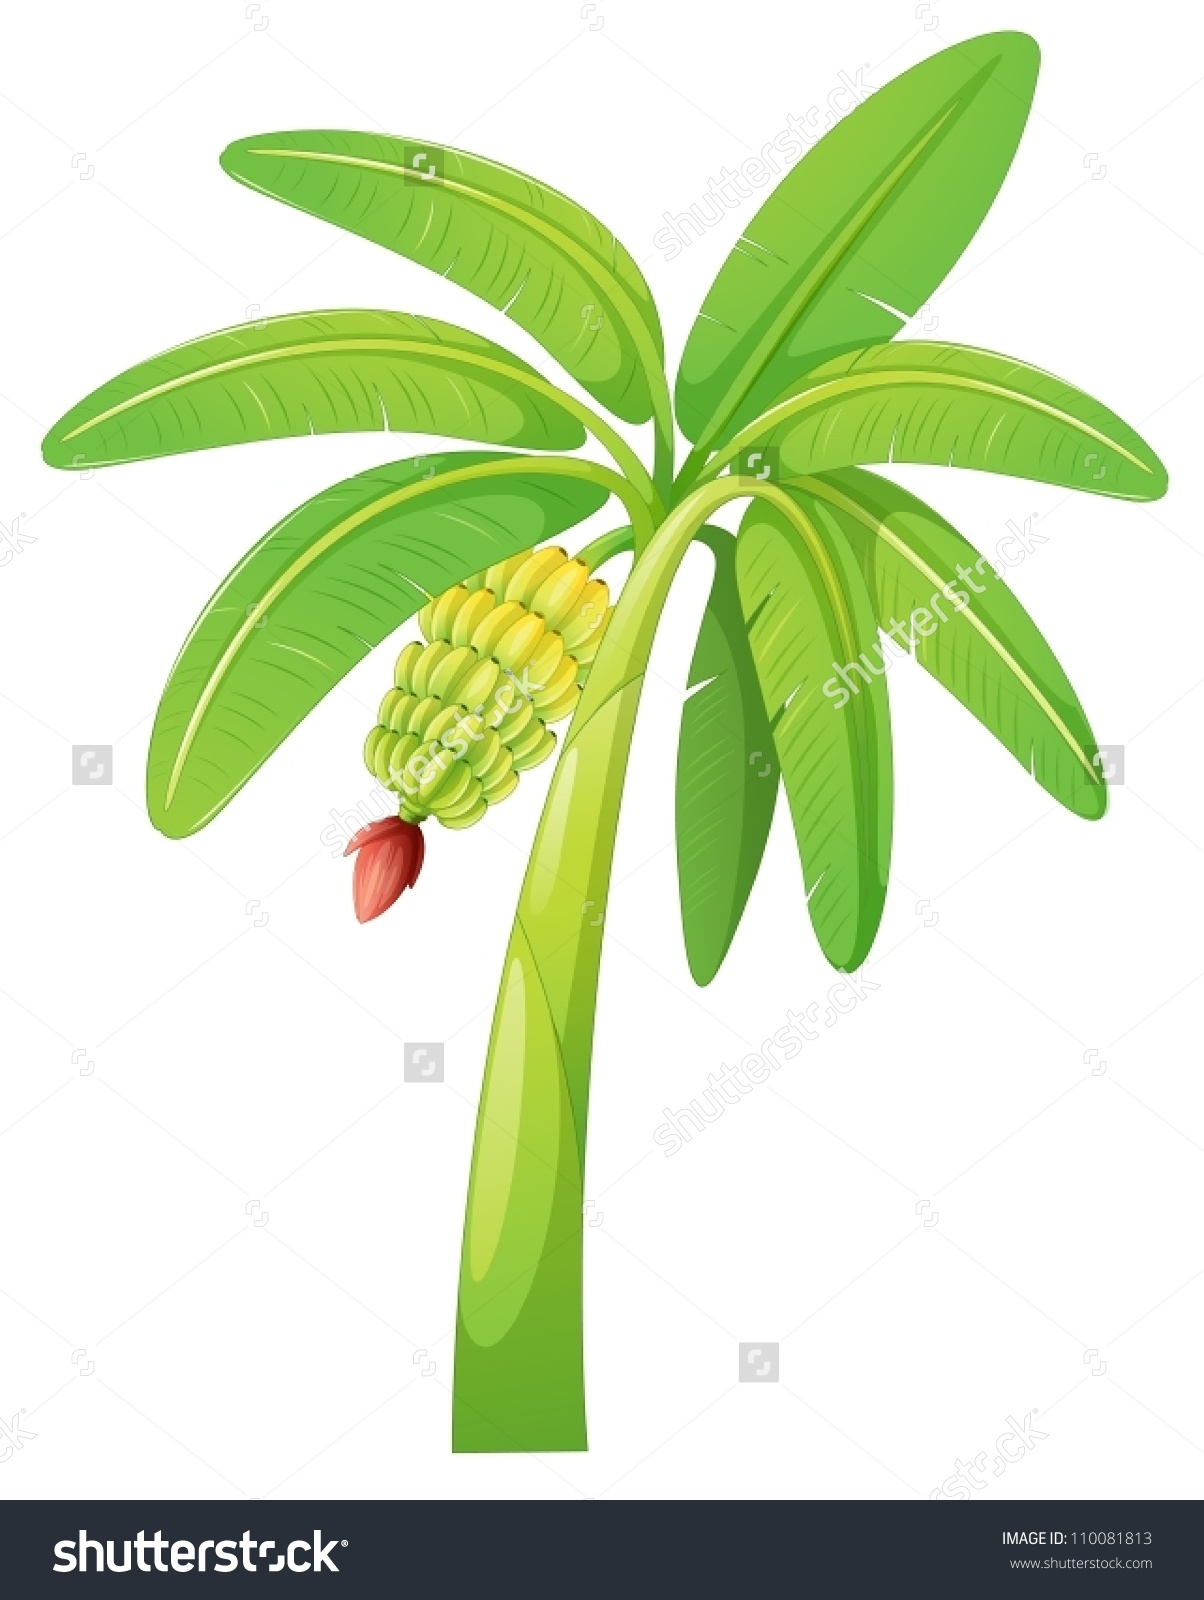 Illustration Banana Tree On White Background Stock Vector.